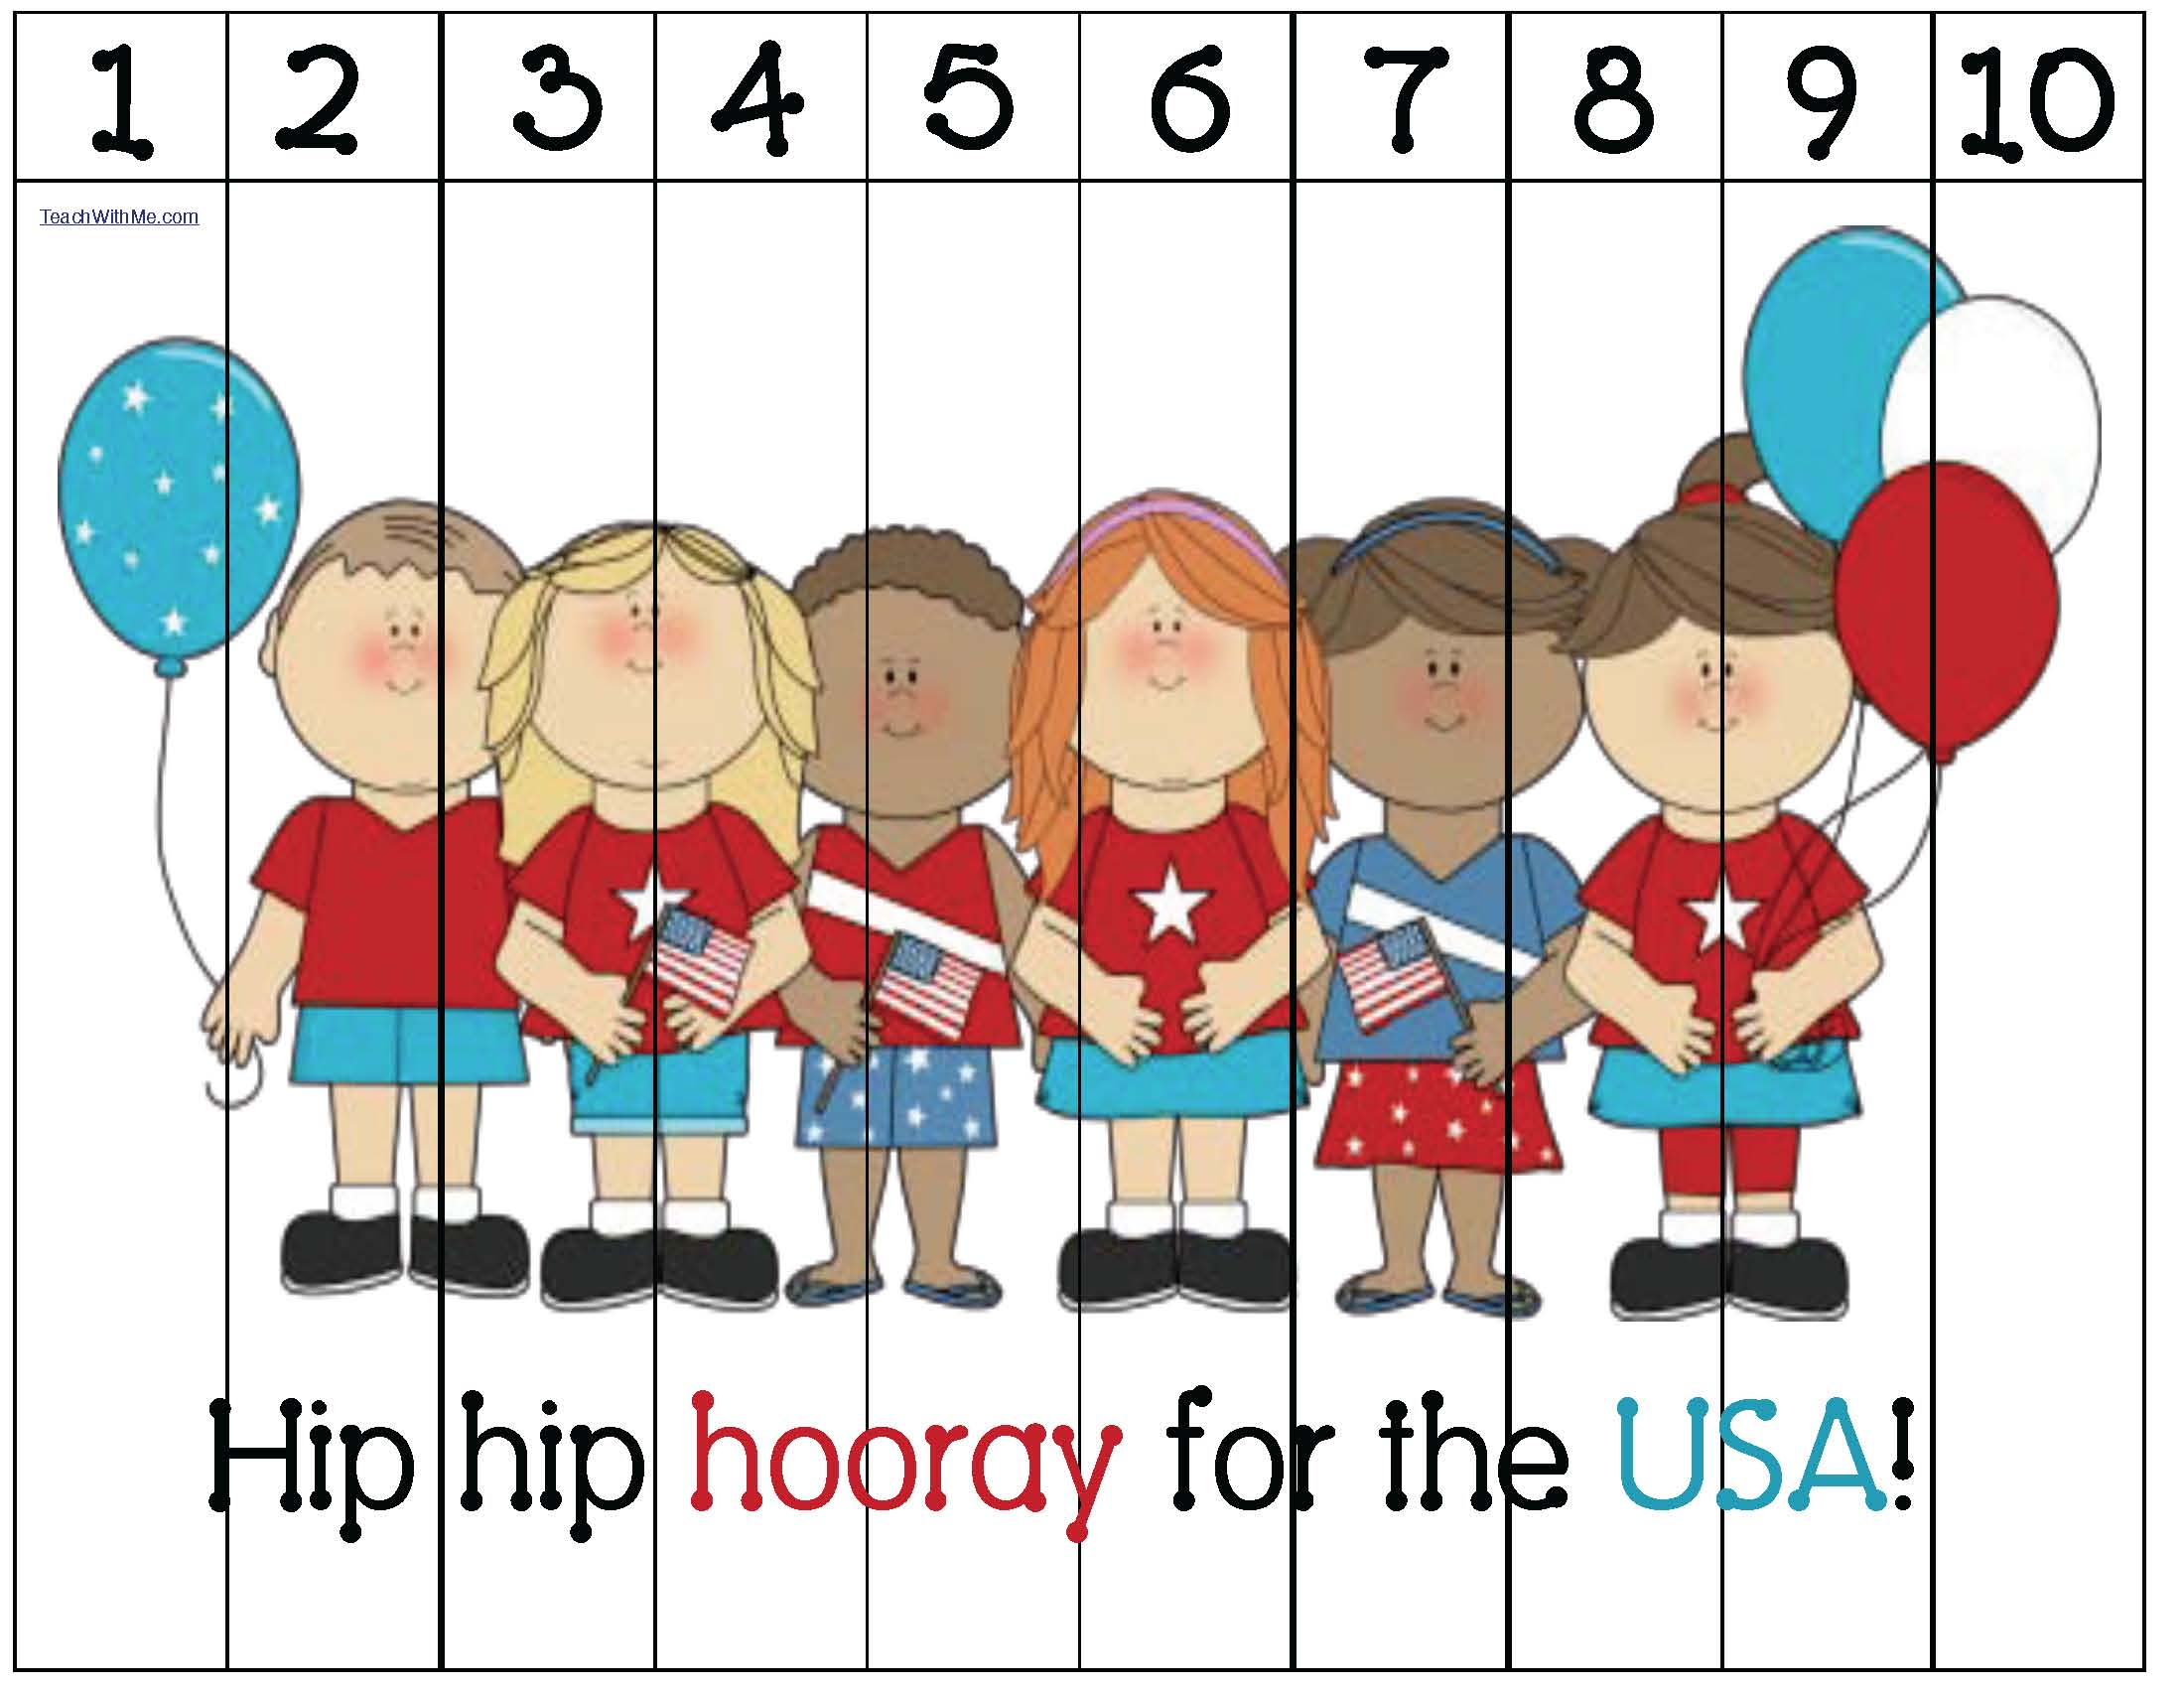 constitution day activities, patriotic holiday activities, number puzzles, constitution day bulletin boards,